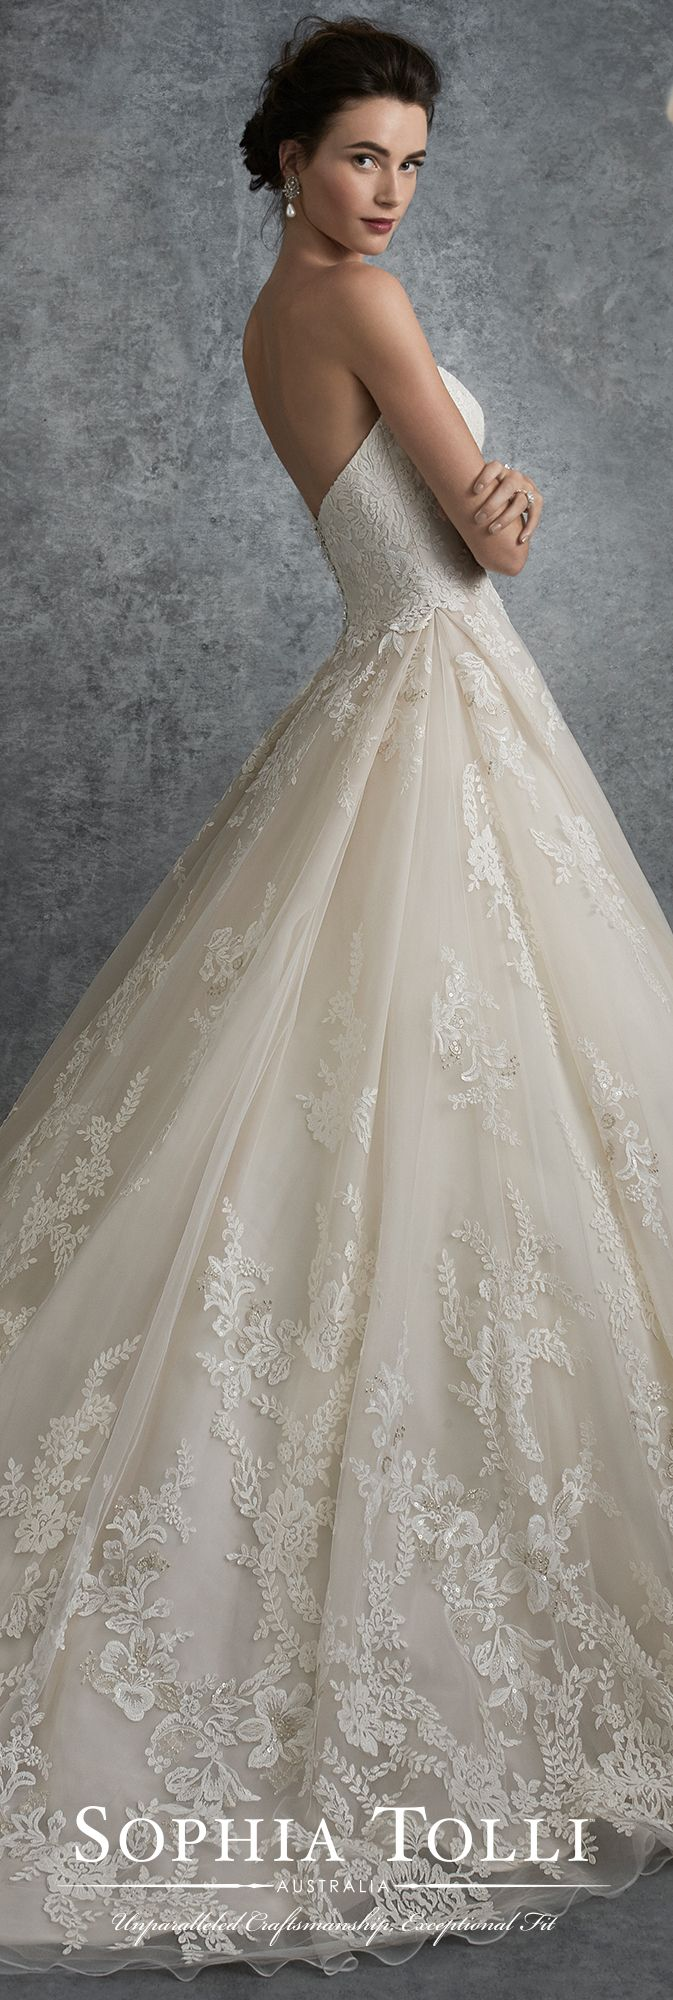 Sophia Tolli Fall 2017 Wedding Gown Collection - Style No. Y21753 Virgo - strapless tulle and lace full A-line wedding dress with chapel length train